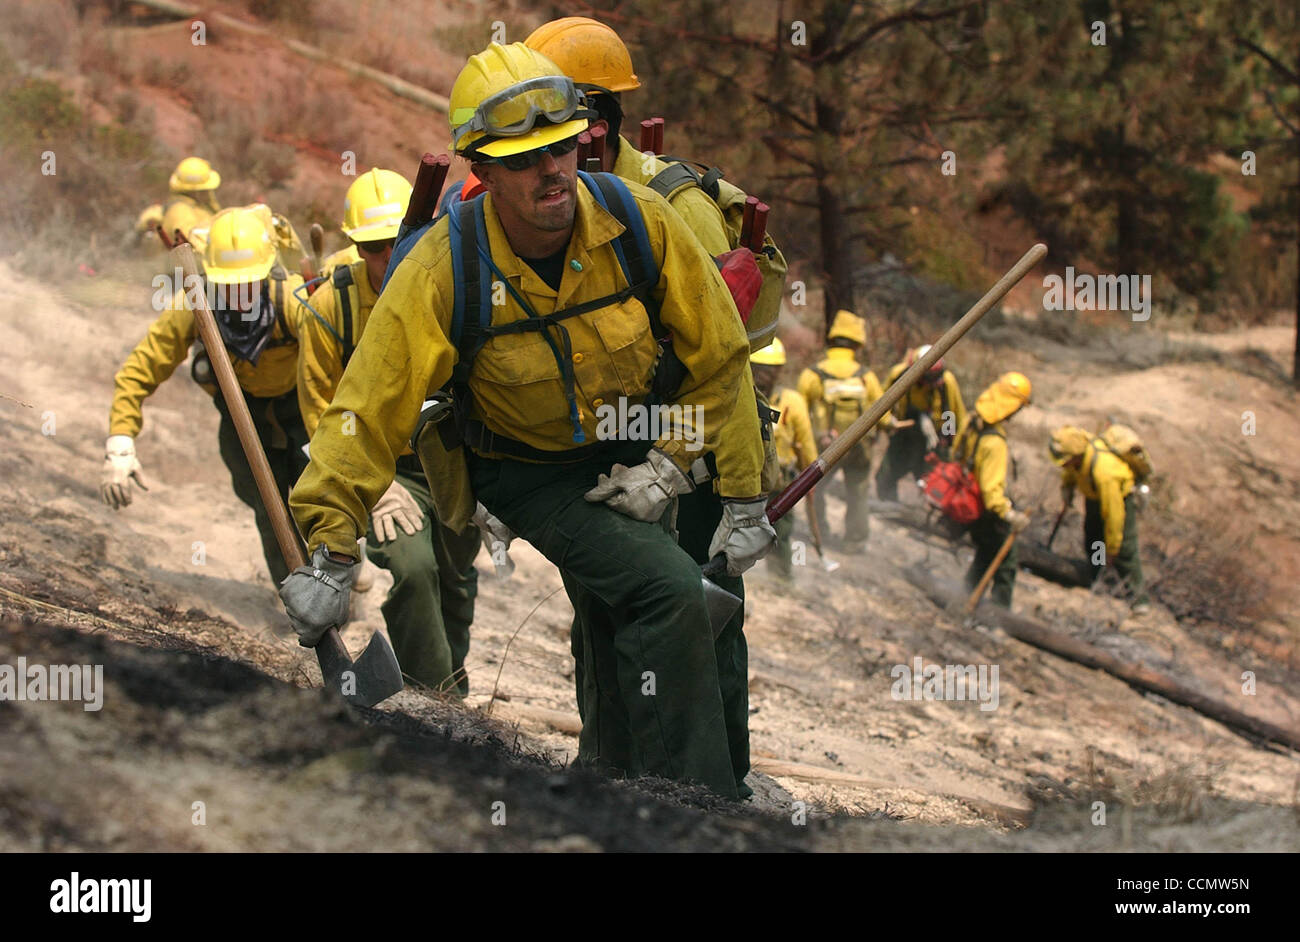 Jul 16, 2004; Carson City, CA, USA; Bureau of Indian Affairs firefighter DAVE CURNS leads a squad of his peers on a search for hotspots Friday, July 16, 2004 in the Lakeview Estates area of Carson City, Nevada. Hilly terrain, whipping winds and erratic fire behavior continued to challenge crews batt Stock Photo